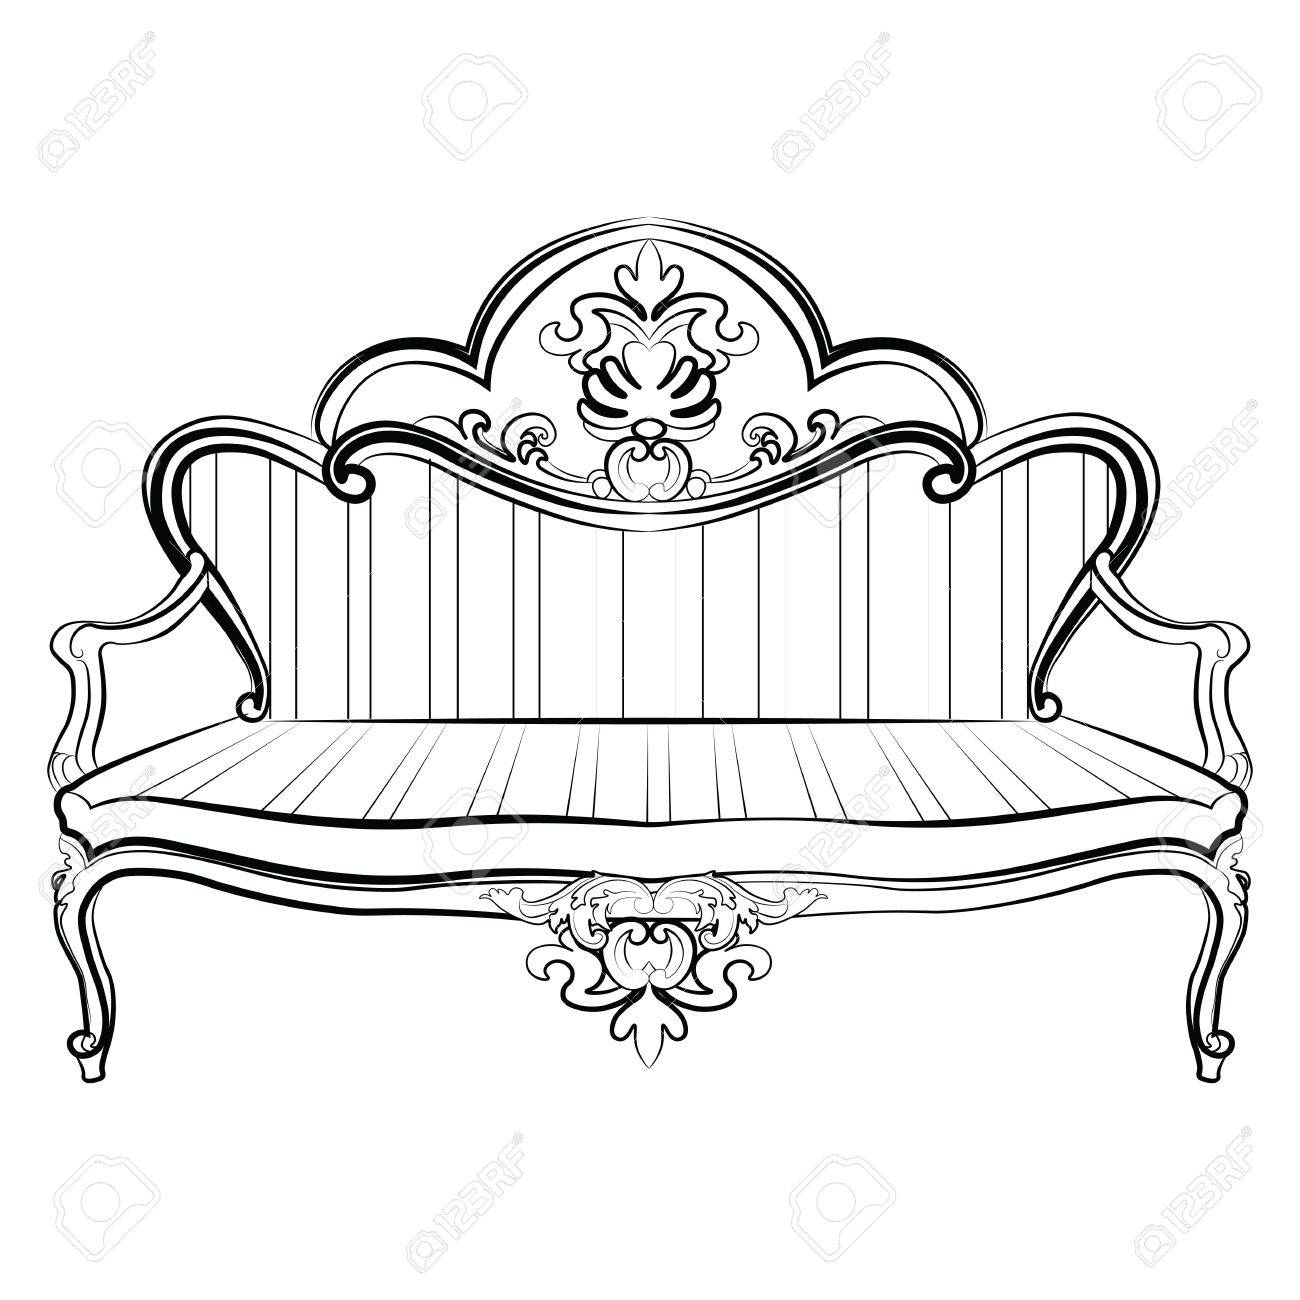 Rococo furniture sketch - Royal Sofa In Rococo Style With Damask Luxurious Ornaments Vector Stock Vector 58507759